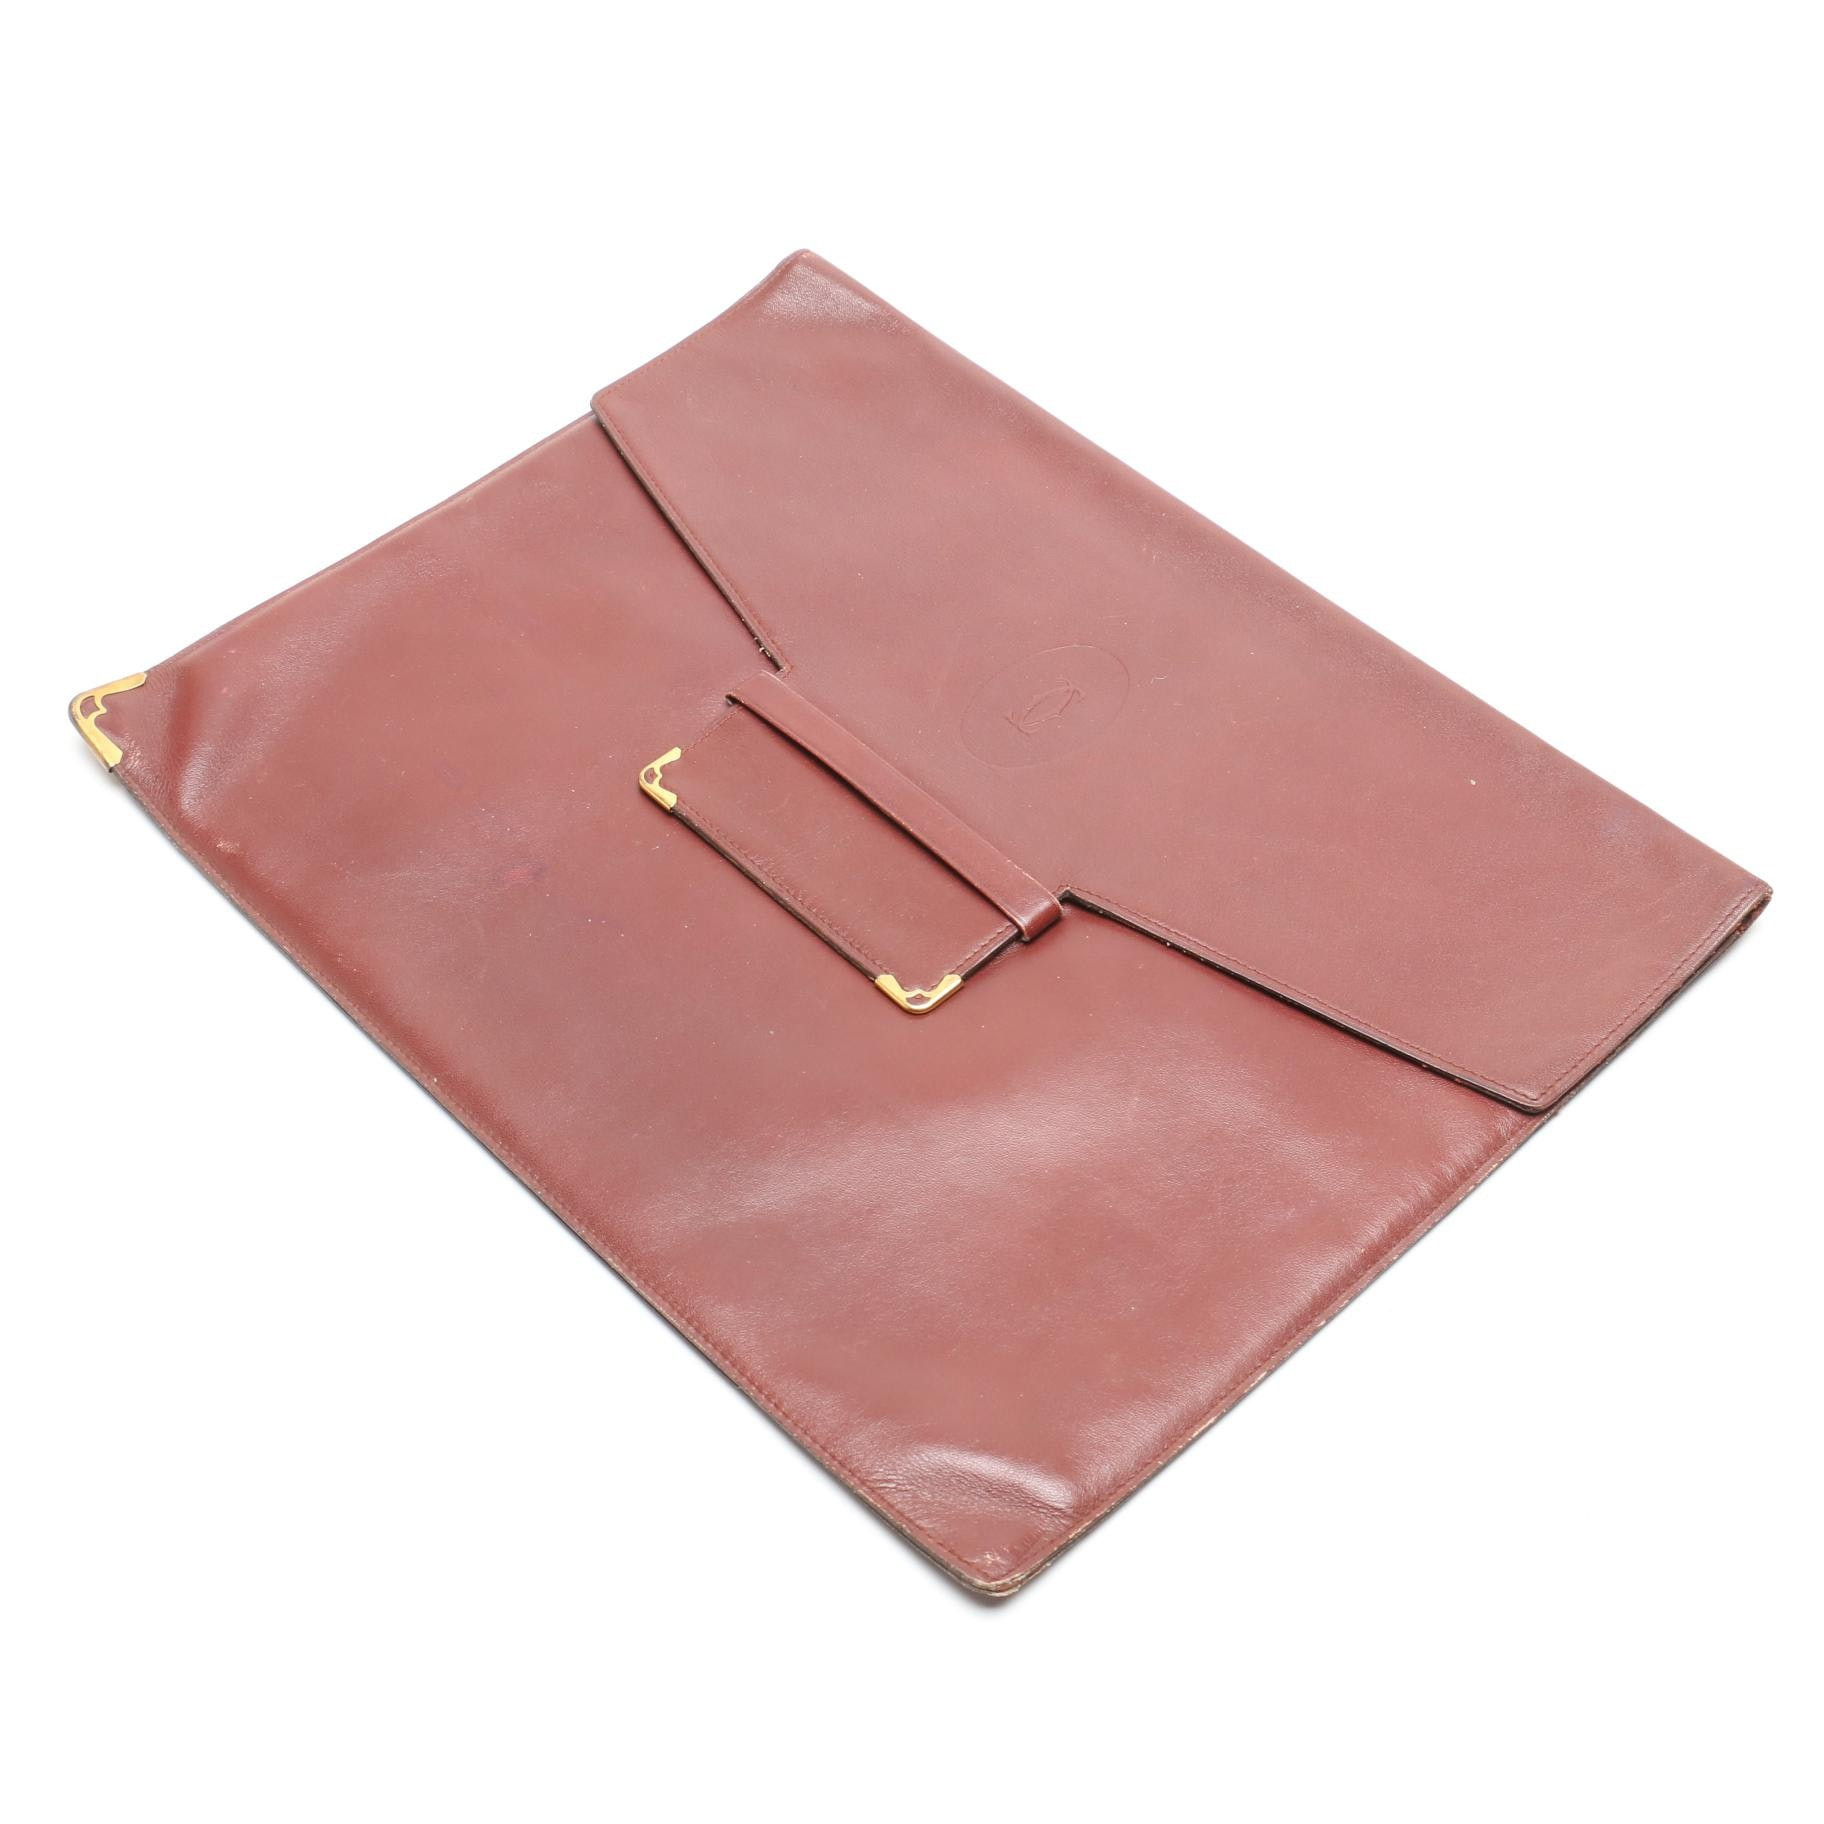 Vintage Cartier of Paris Burgundy Leather Clutch